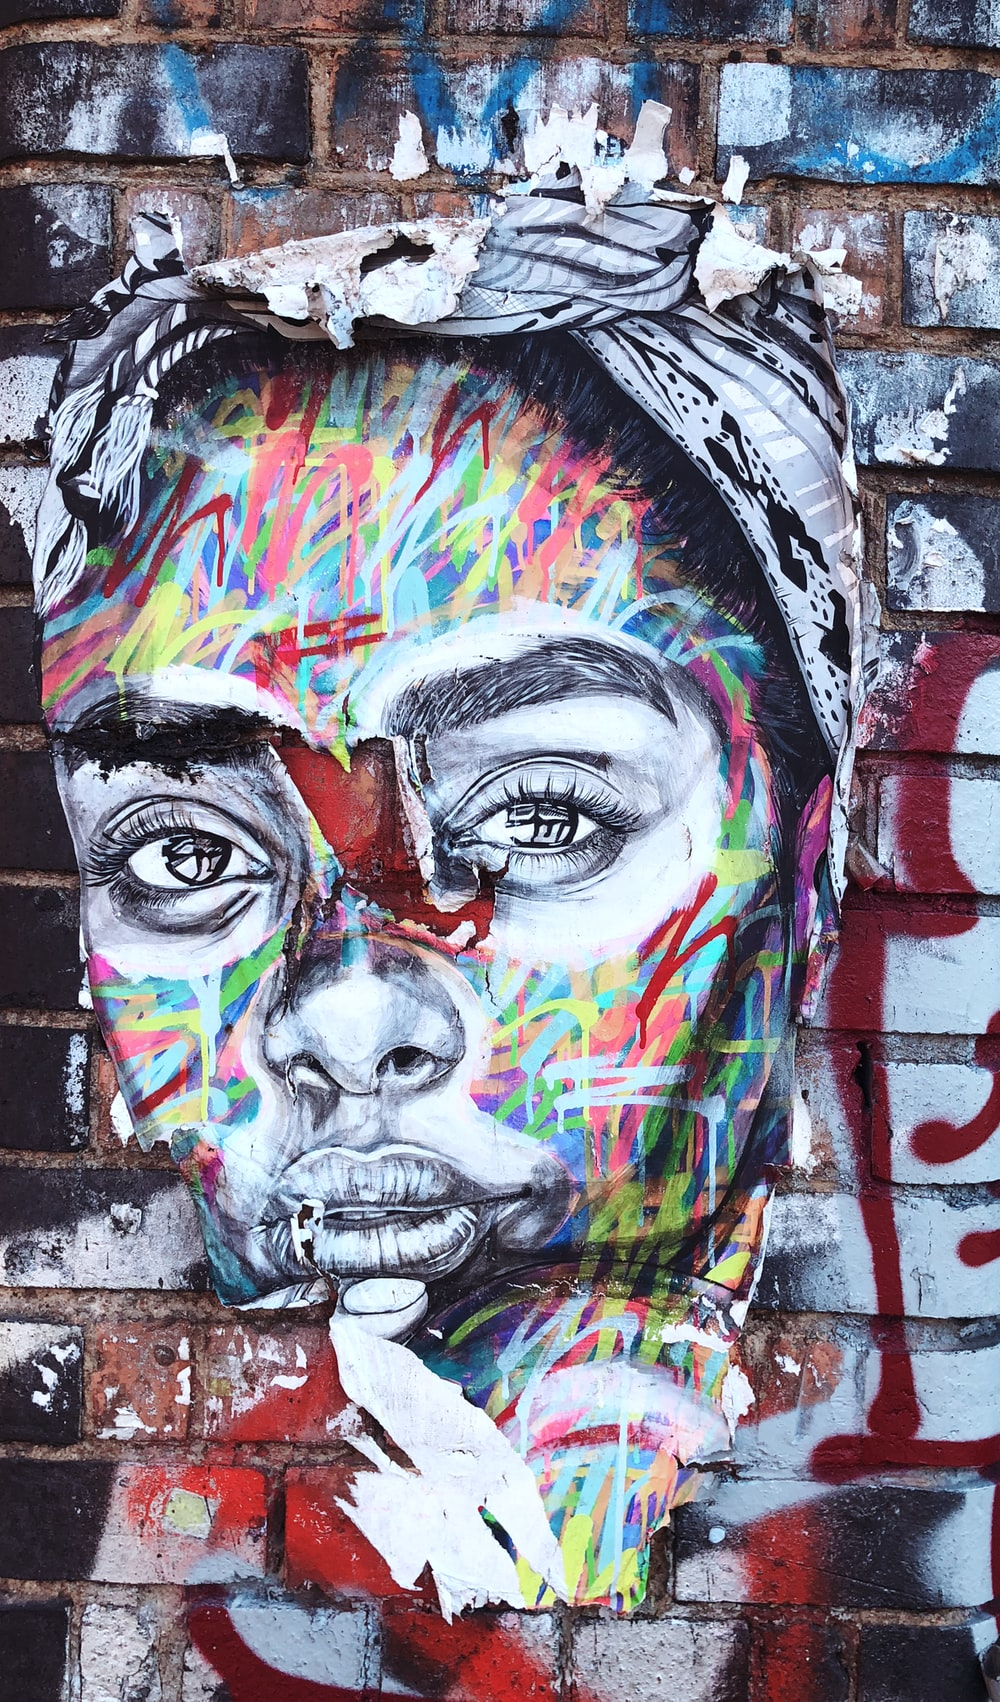 Street Art Pictures Hd Download Free Images On Unsplash